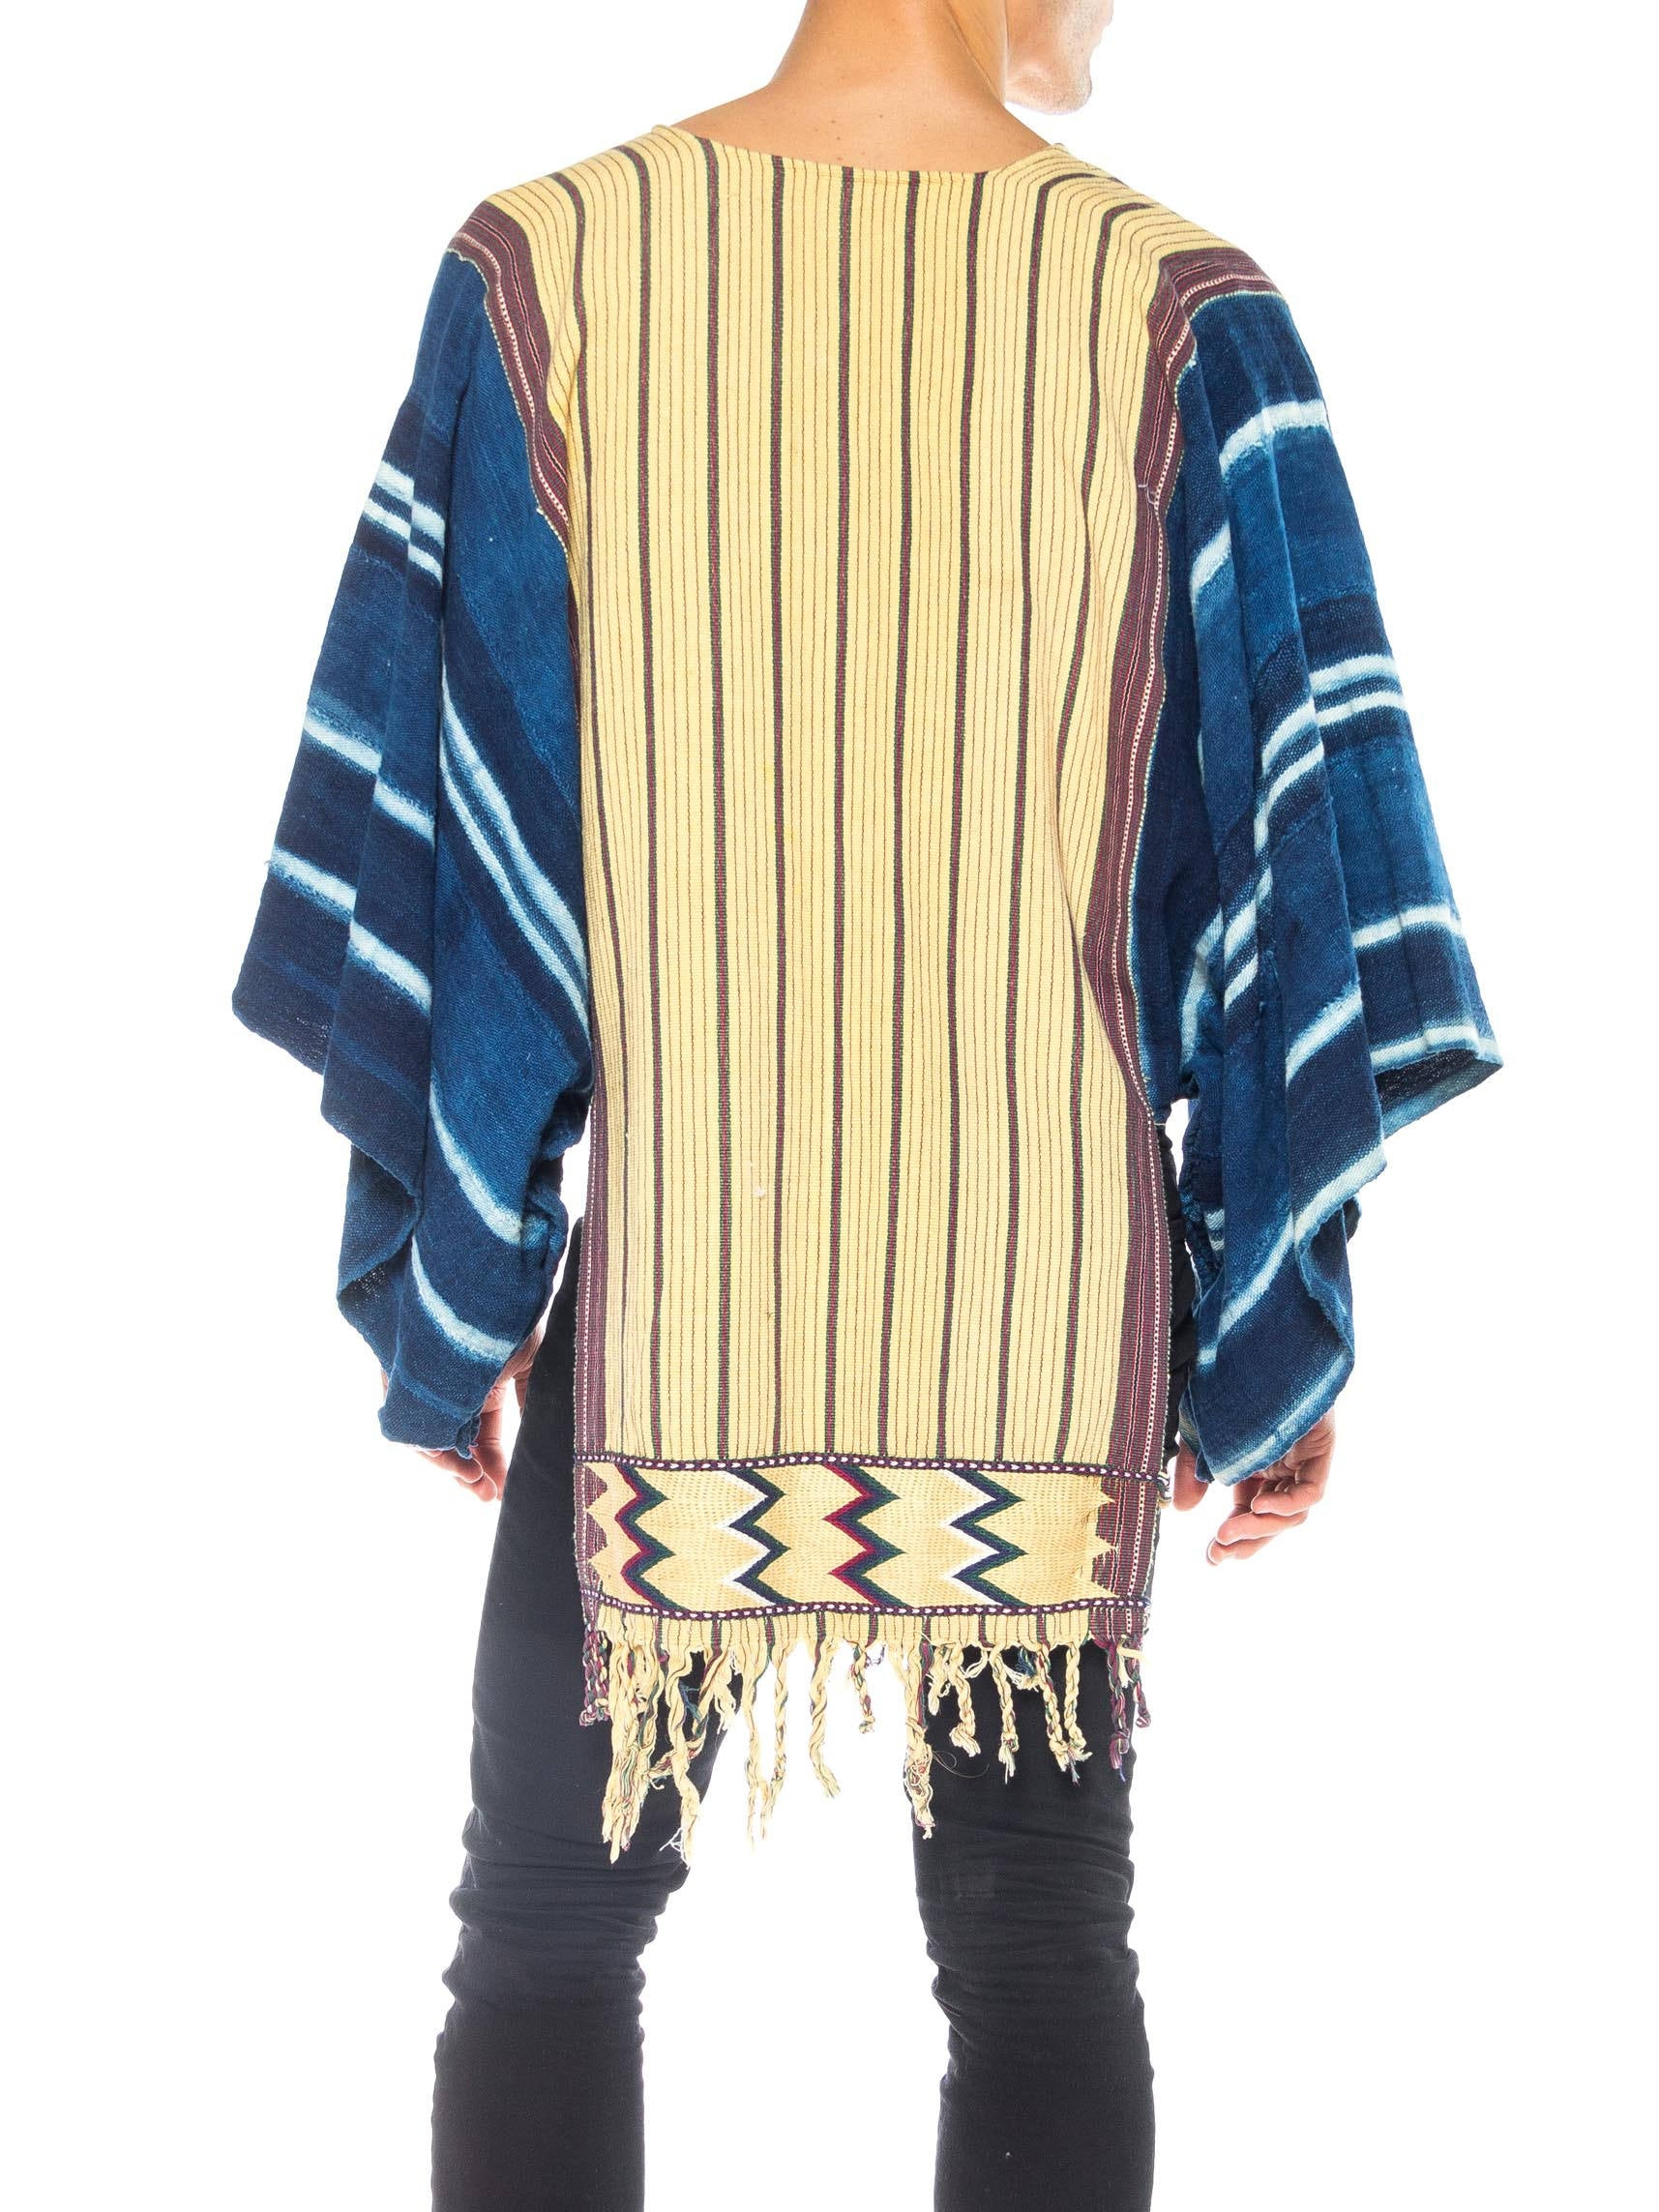 MORPHEW COLLECTION Hand Woven Cotton Unisex Poncho Made From African & Guatemalan Textiles